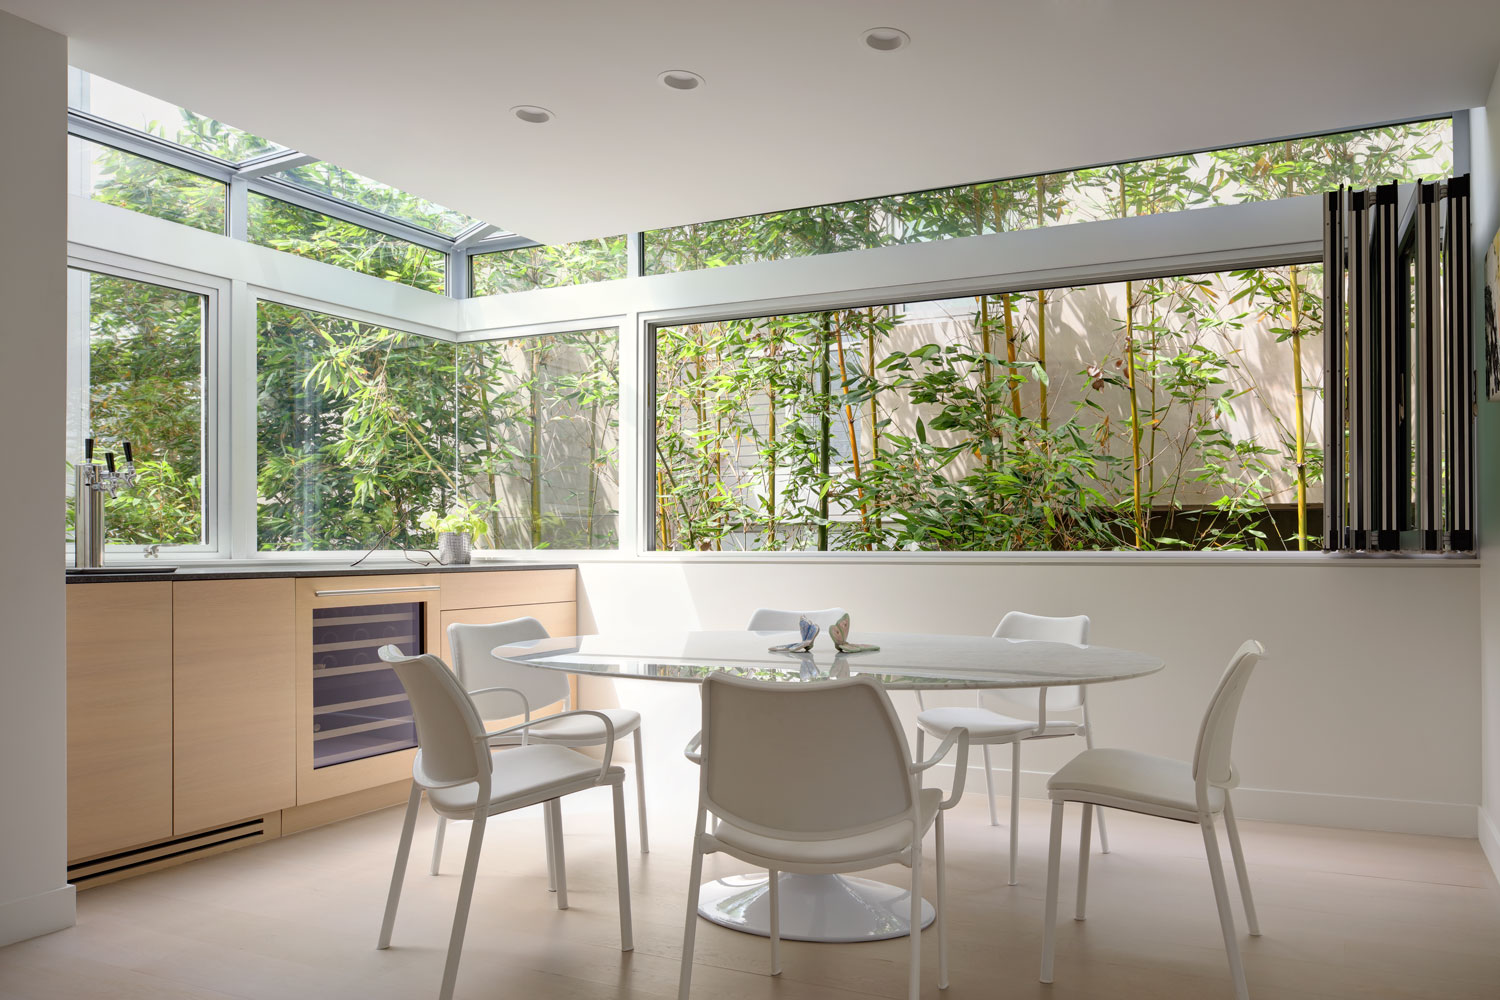 silicon-bay-contemporary-dining-room-retractable-windows.jpg